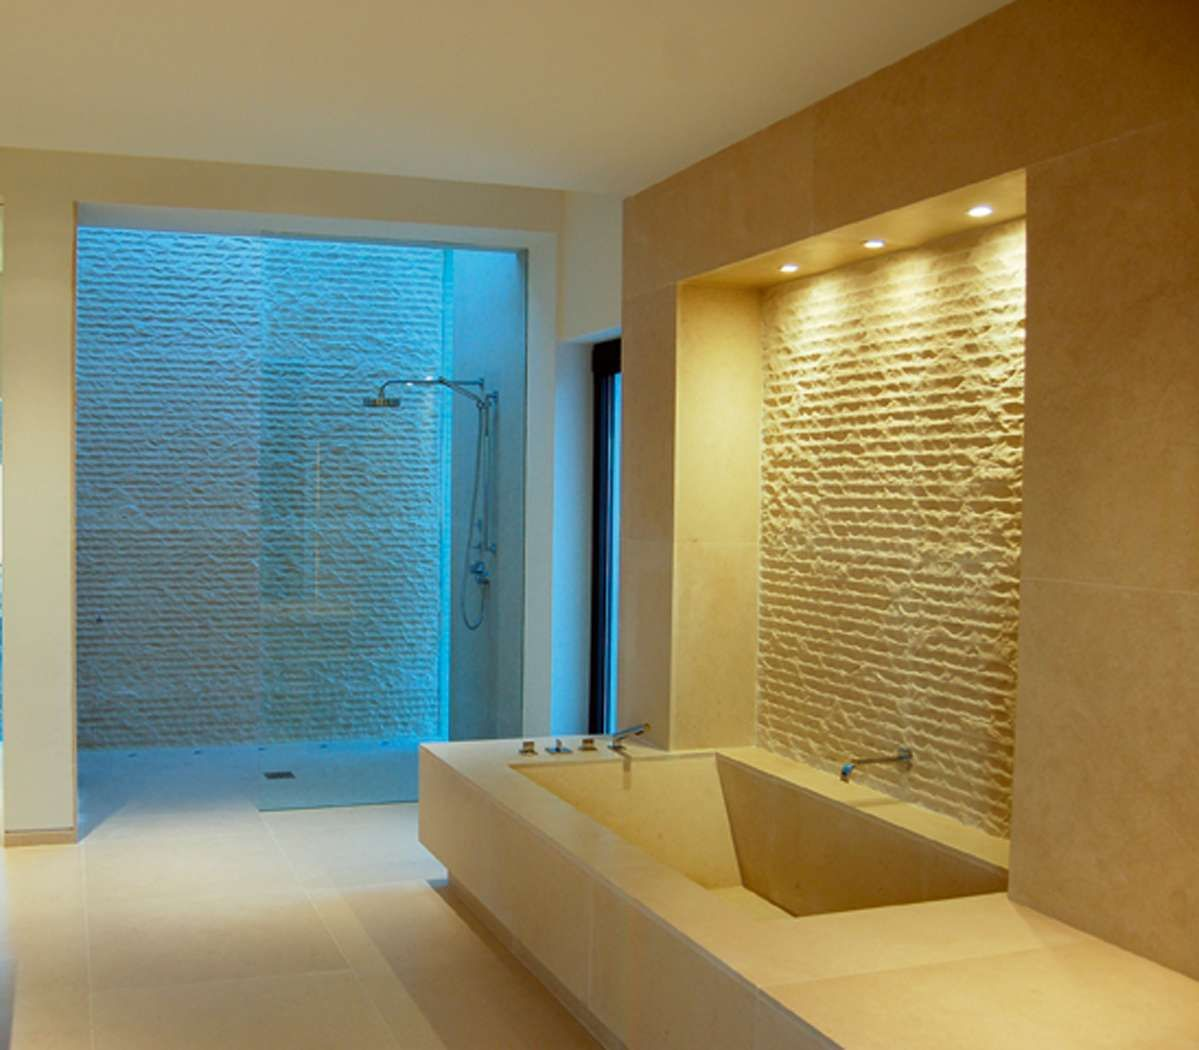 Wet Room Bathroom Design Amazing With Pics Wet Room Set